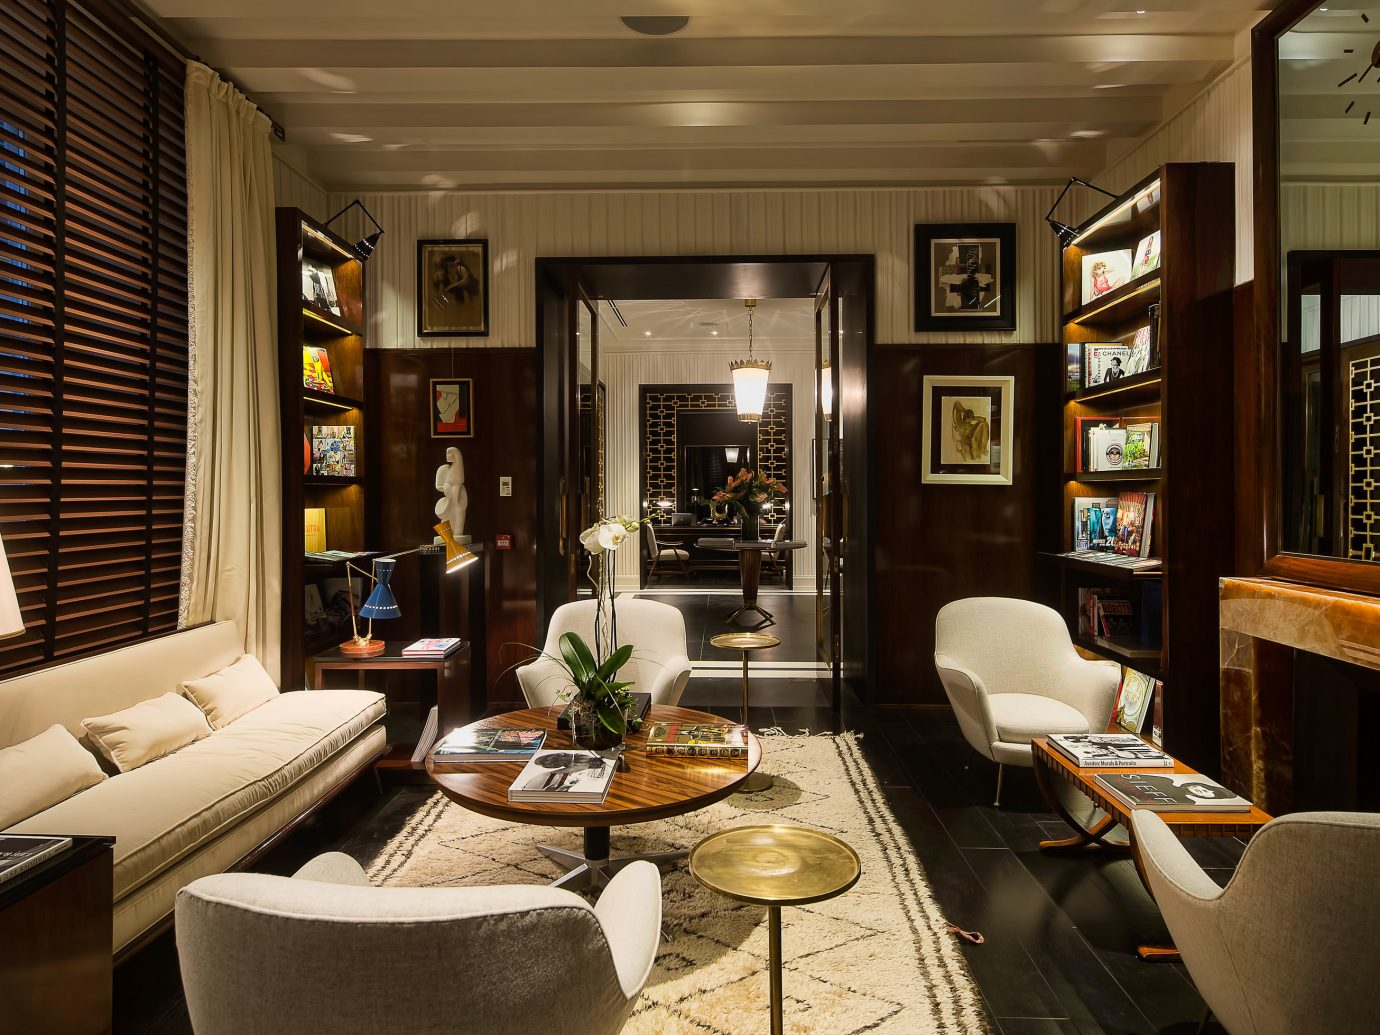 Boutique Hotels Hotels Italy Luxury Travel Romantic Hotels Rome indoor Living room living room property ceiling estate home interior design condominium Lobby dining room real estate window covering Design restaurant Suite furniture area